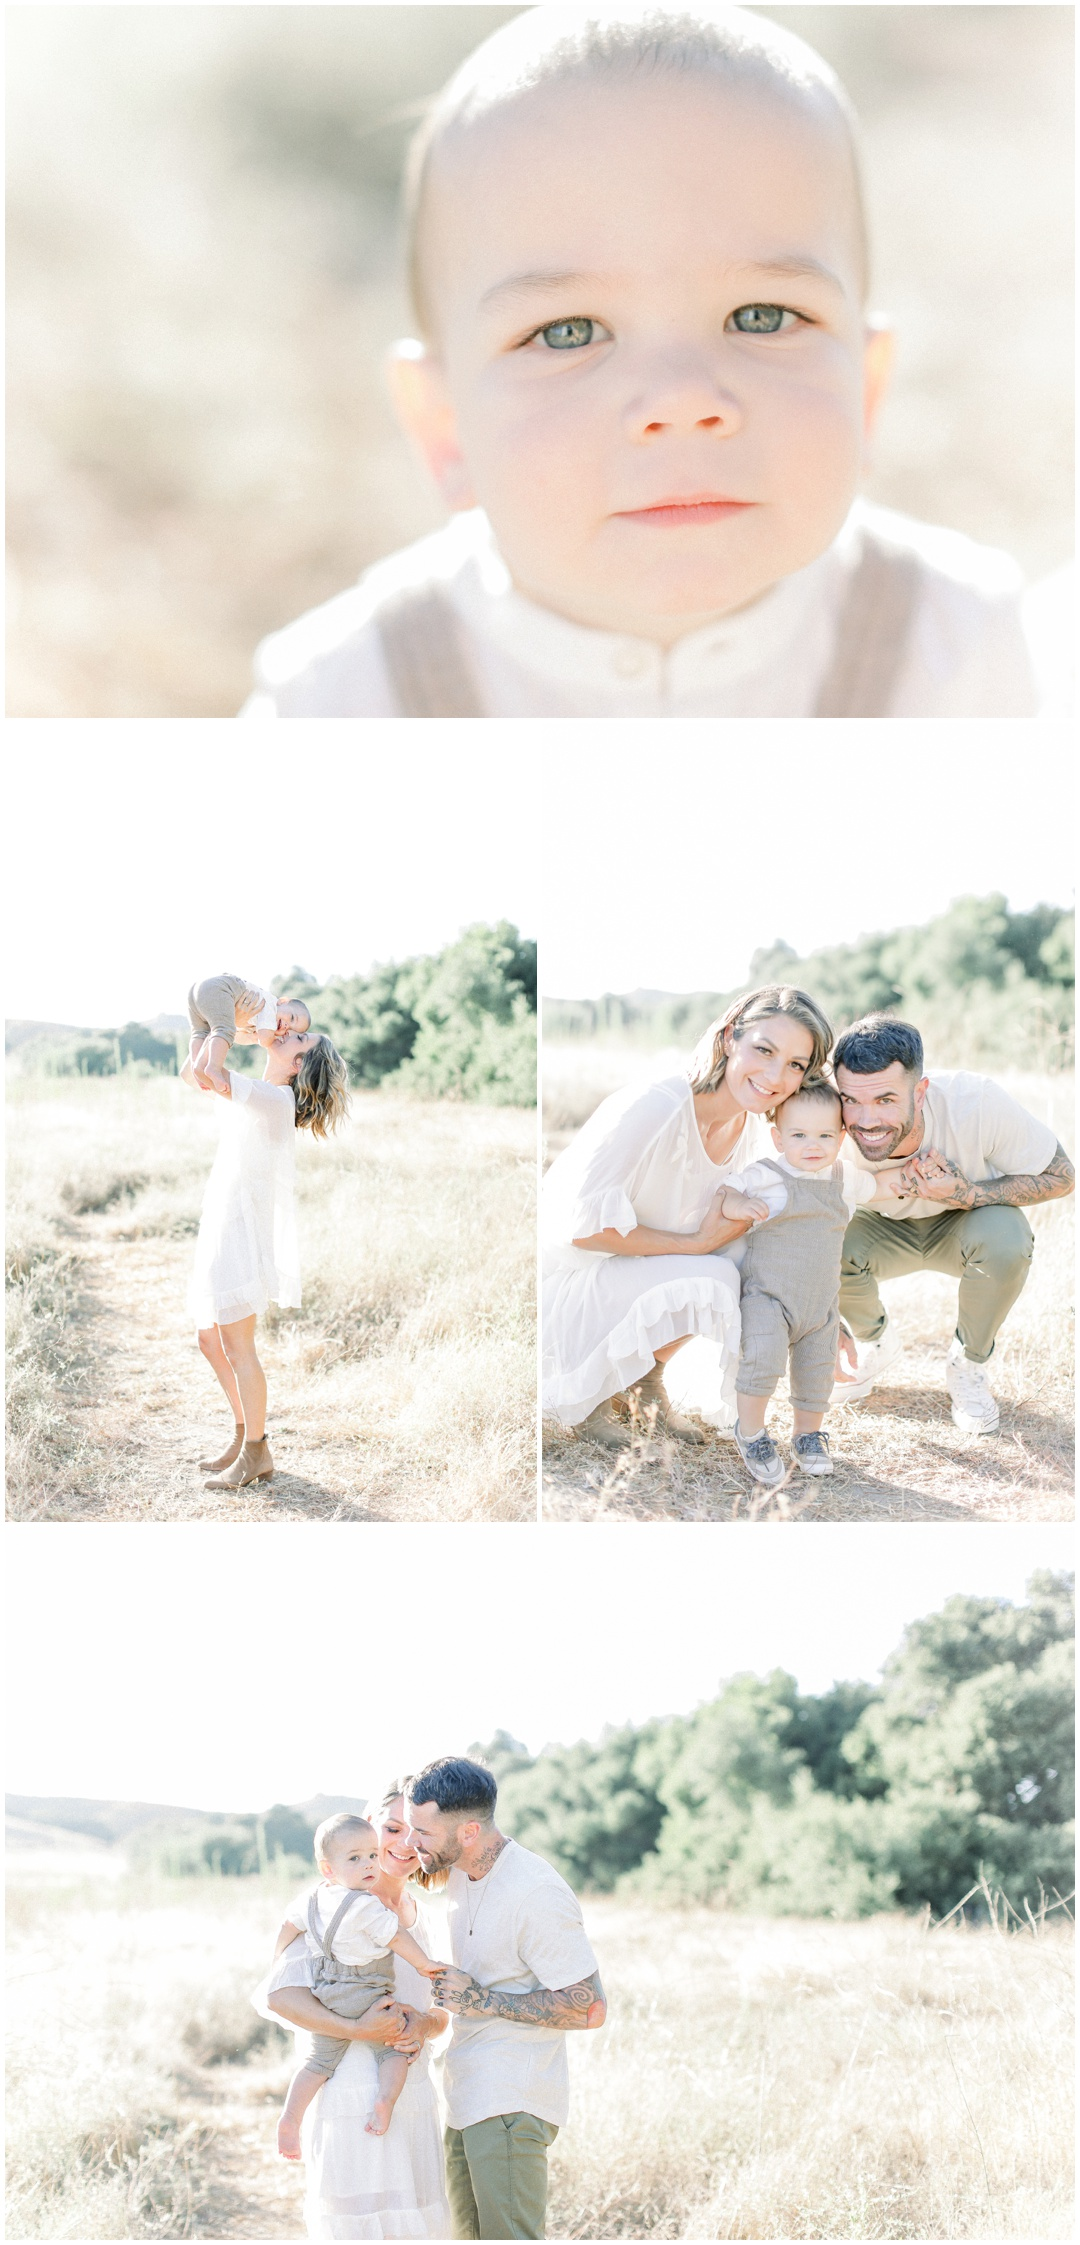 Newport_Beach_Family_Session_Orange_County_Family_Photographer_Thomas_Riley_Wilderness_Park_Carrie_Stotts_Sean_Stotts__4315.jpg